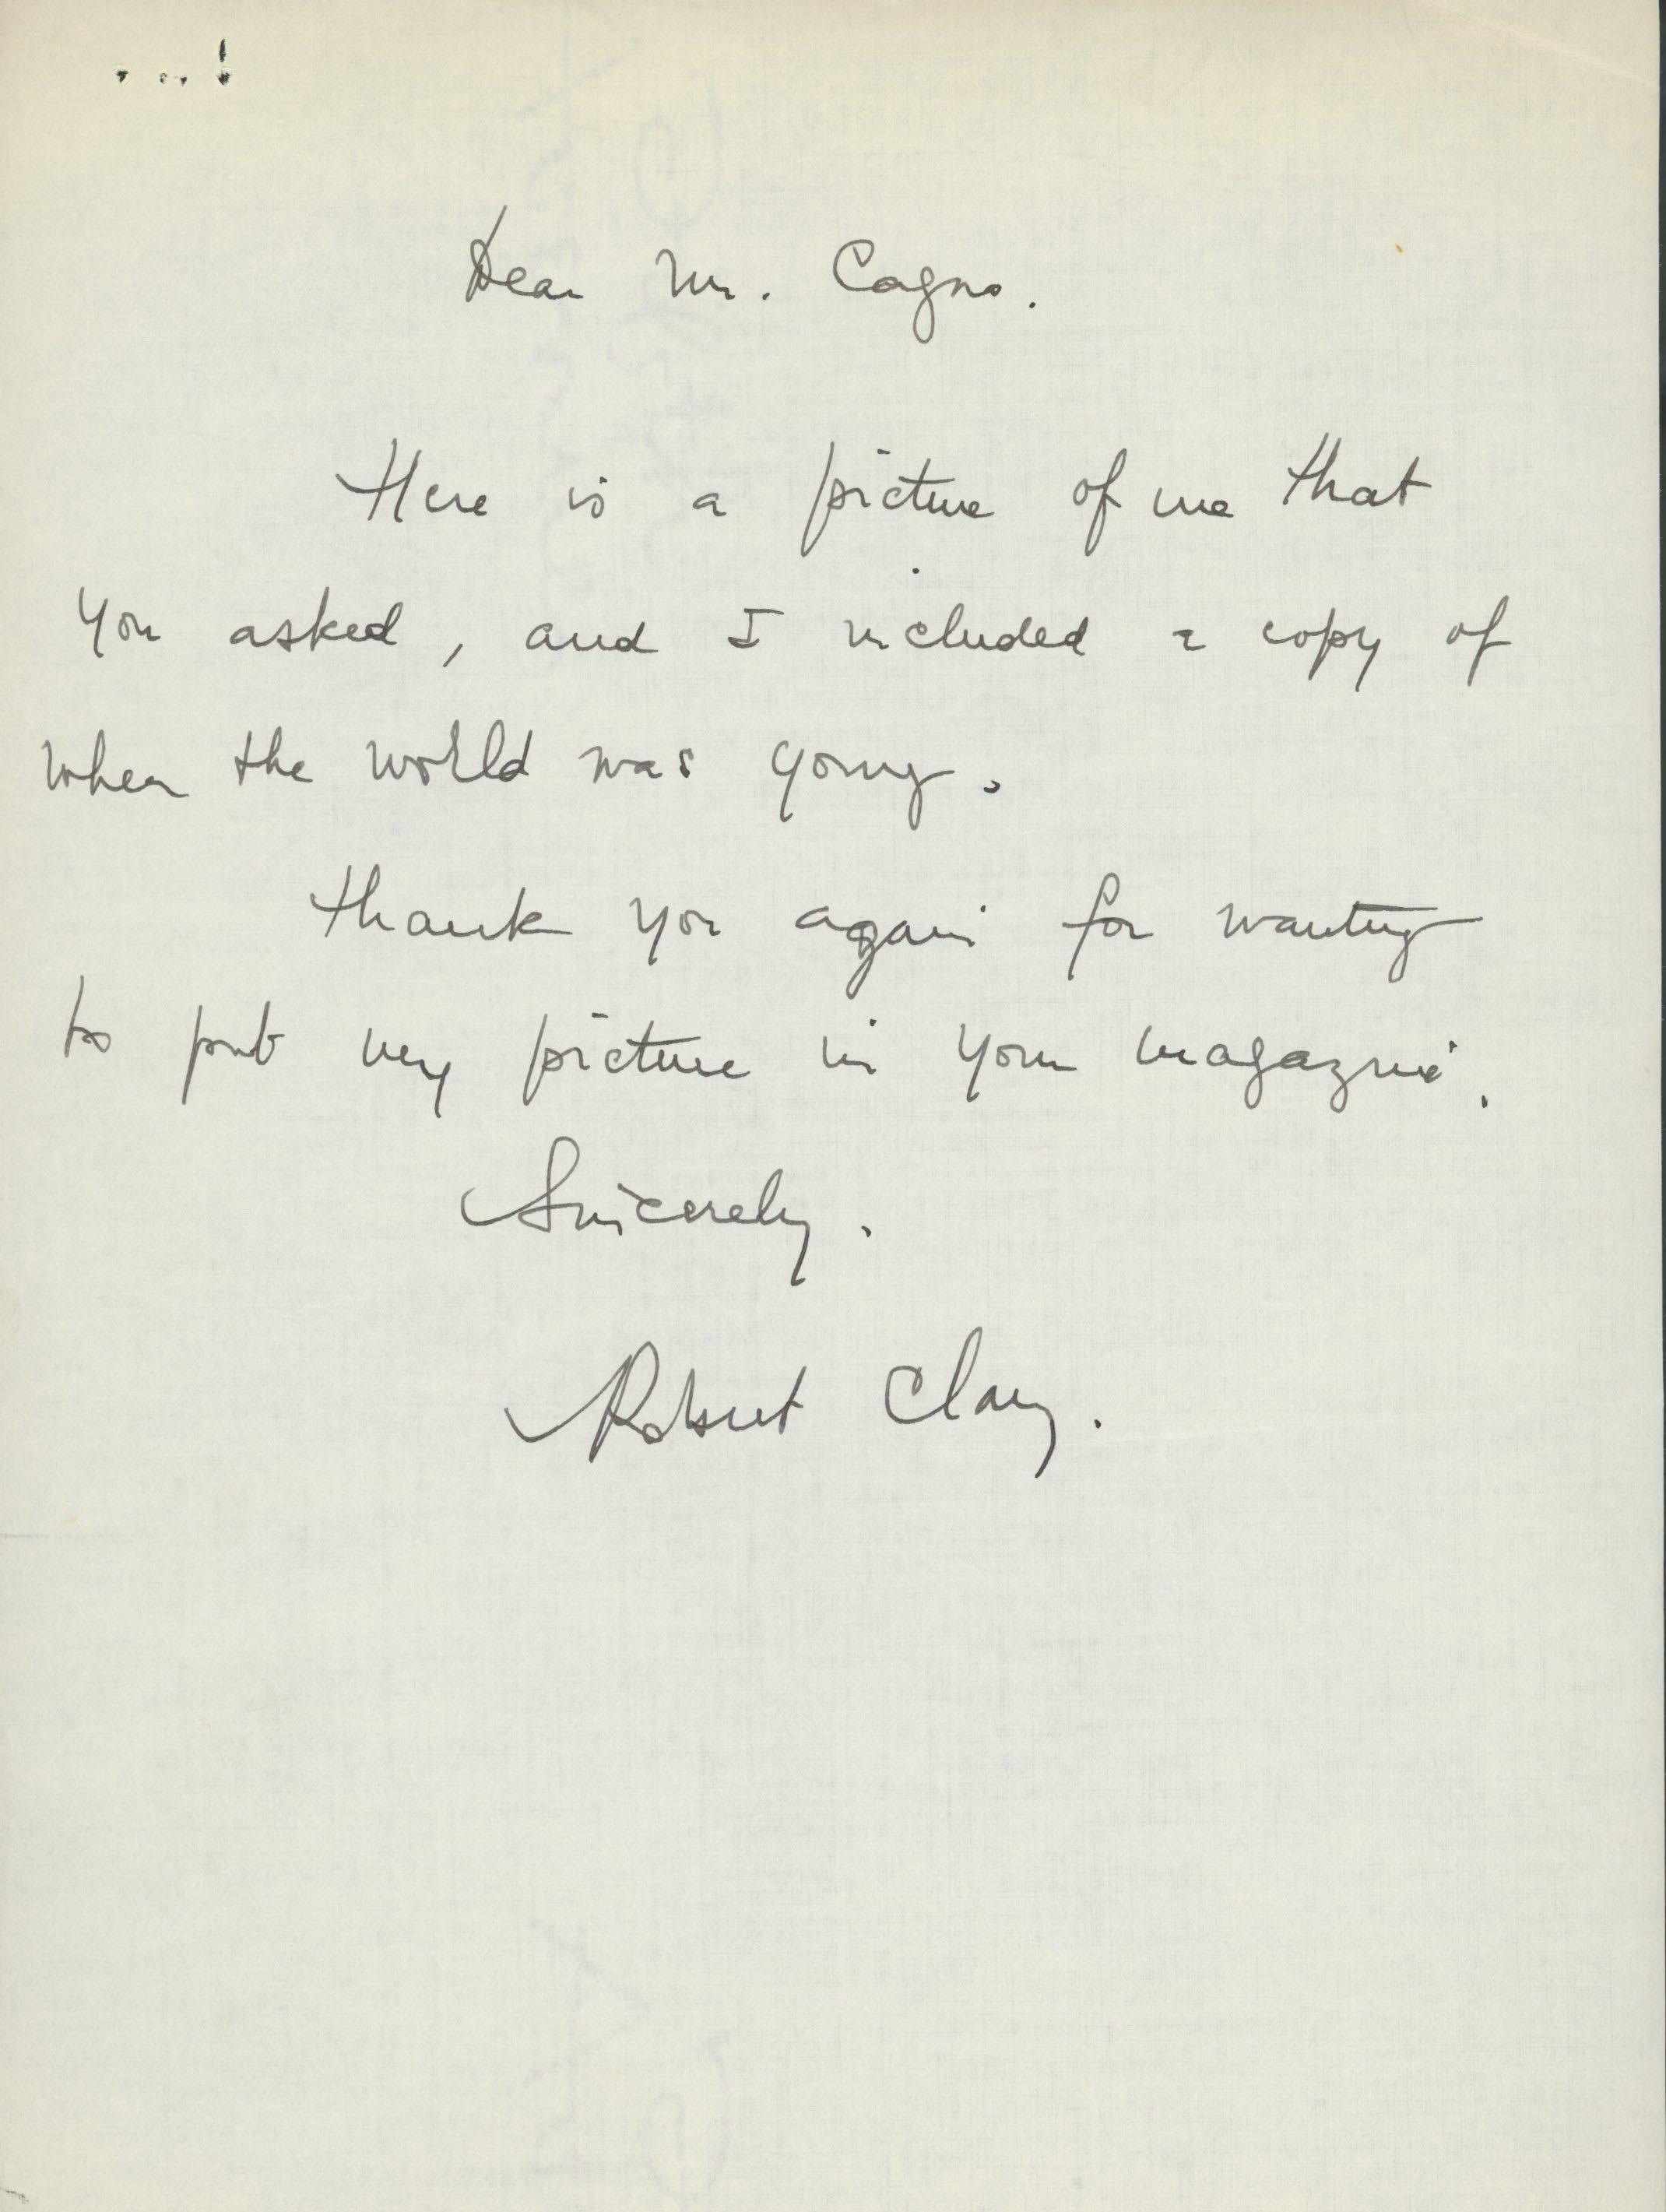 Robert Clary signed letter